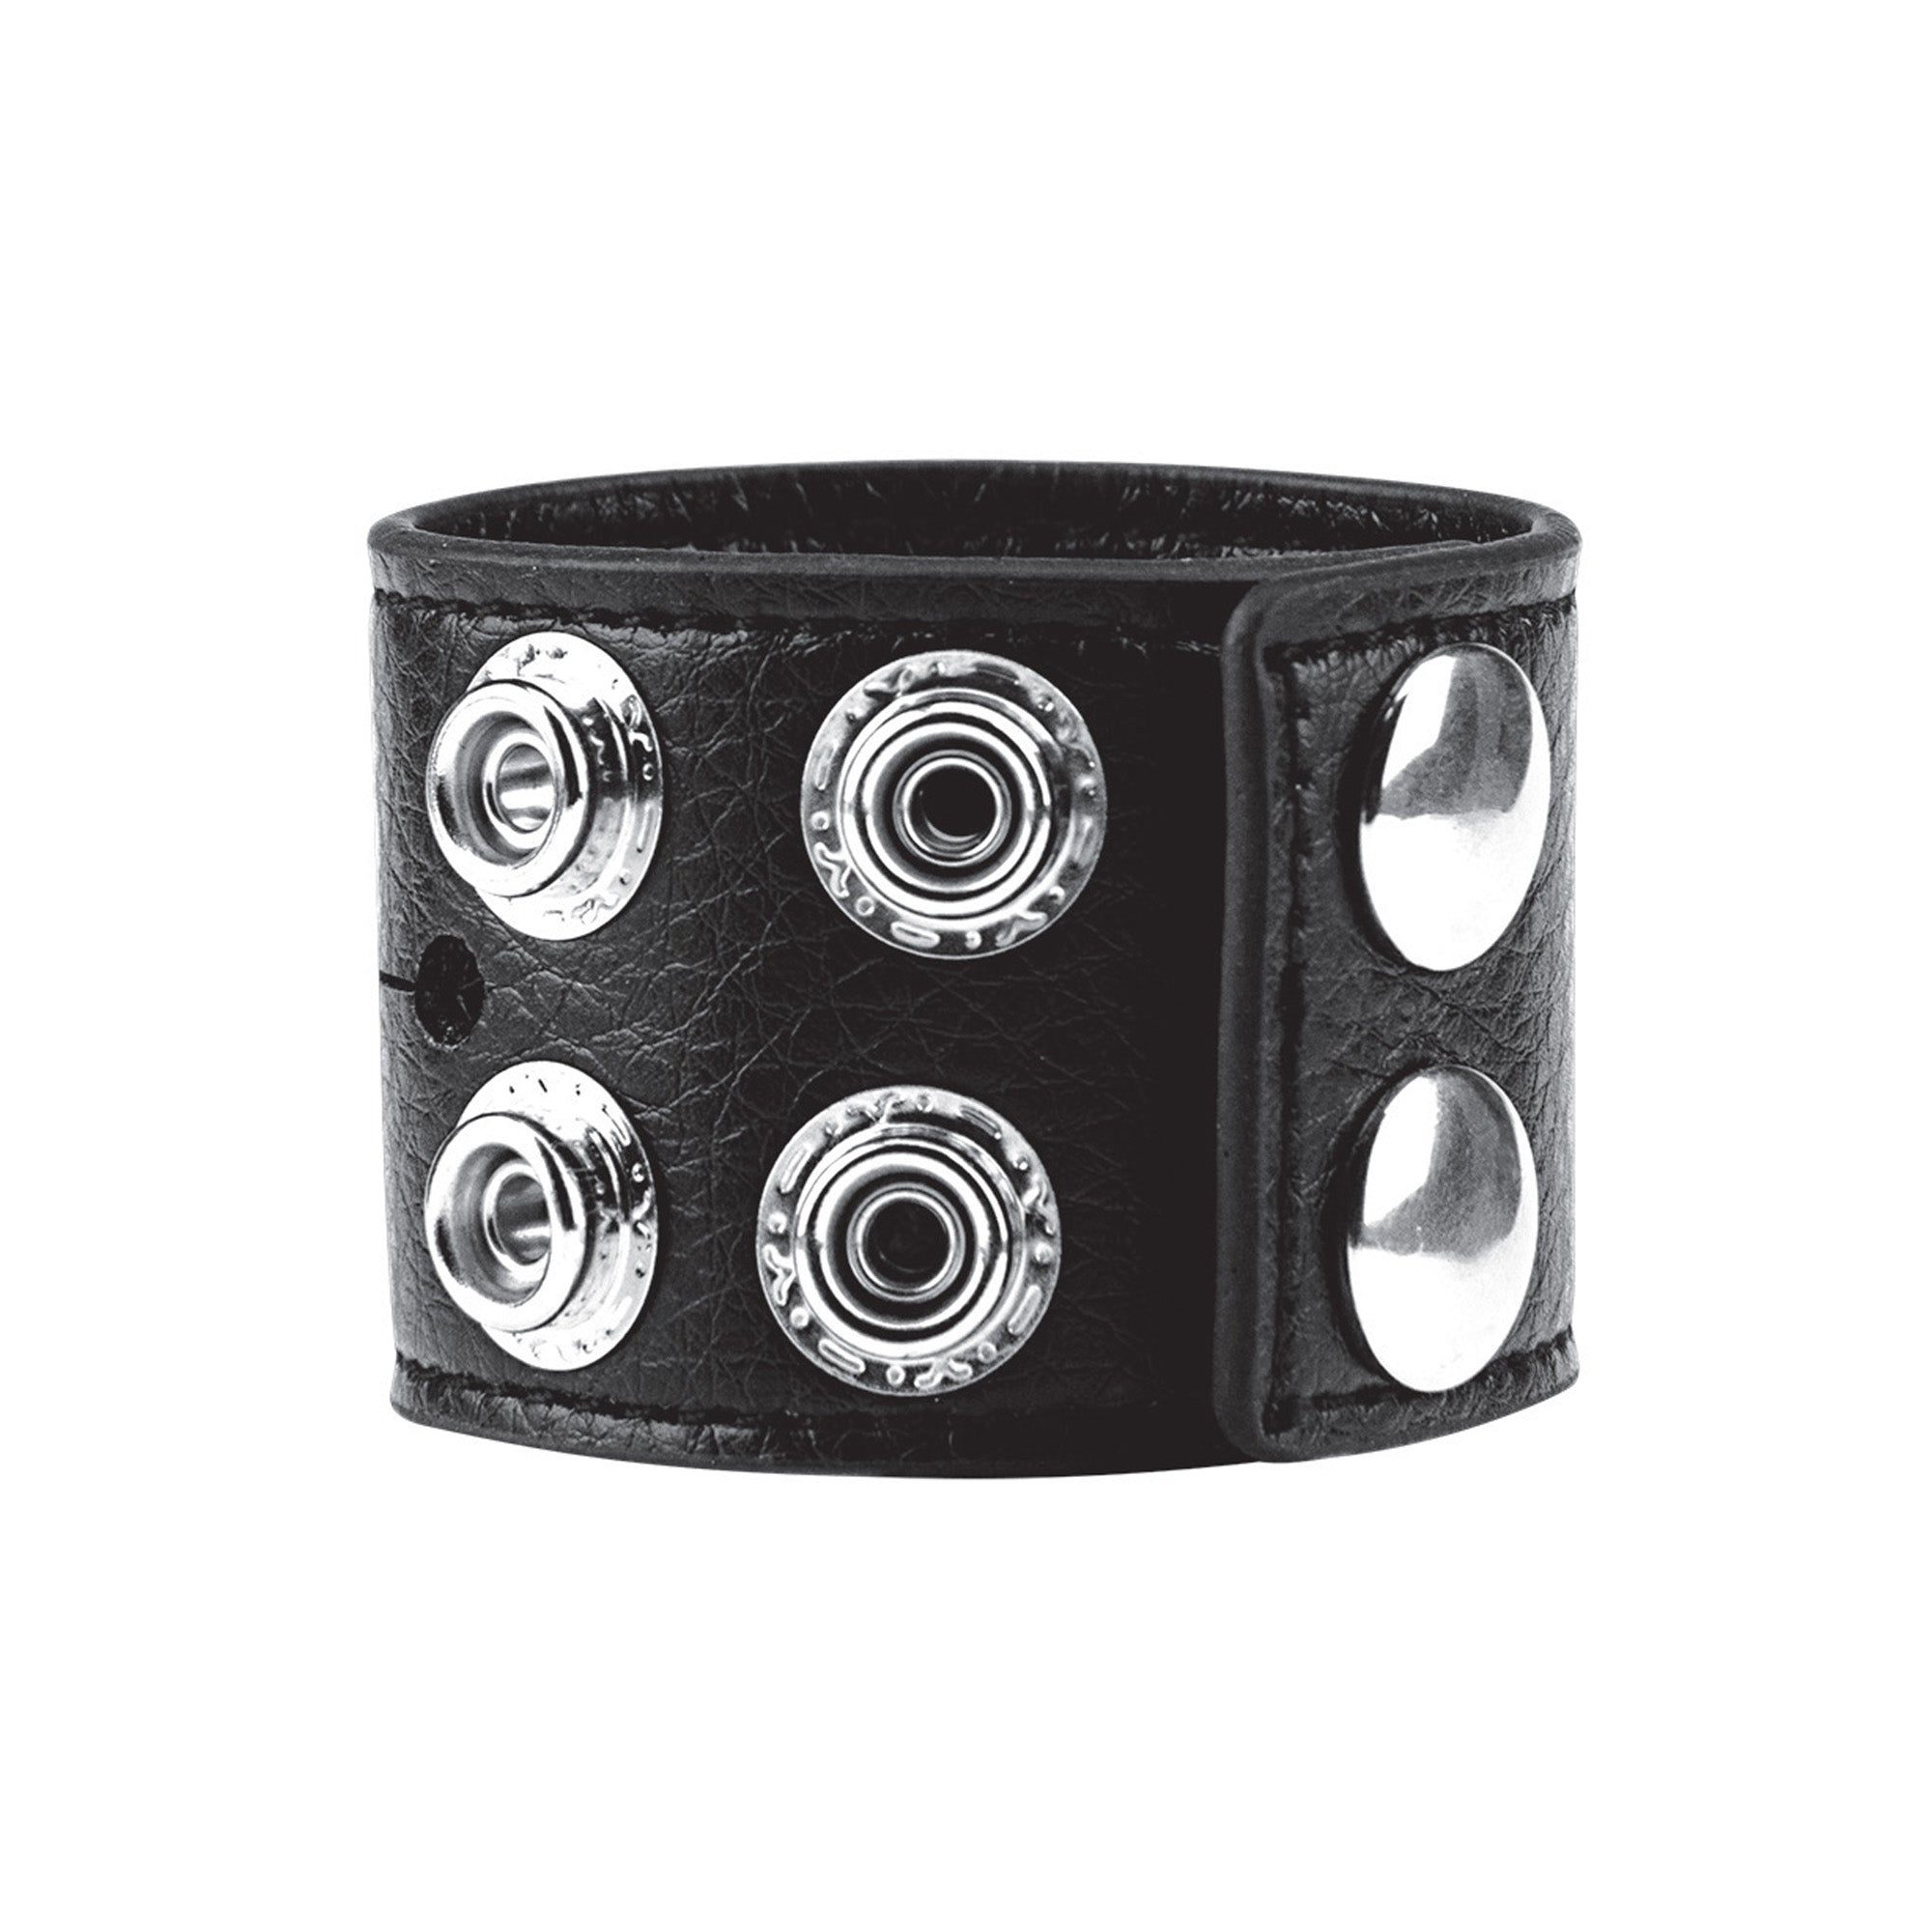 "Blue Line Men 1.5"" Cock Ring With Ball Strap"